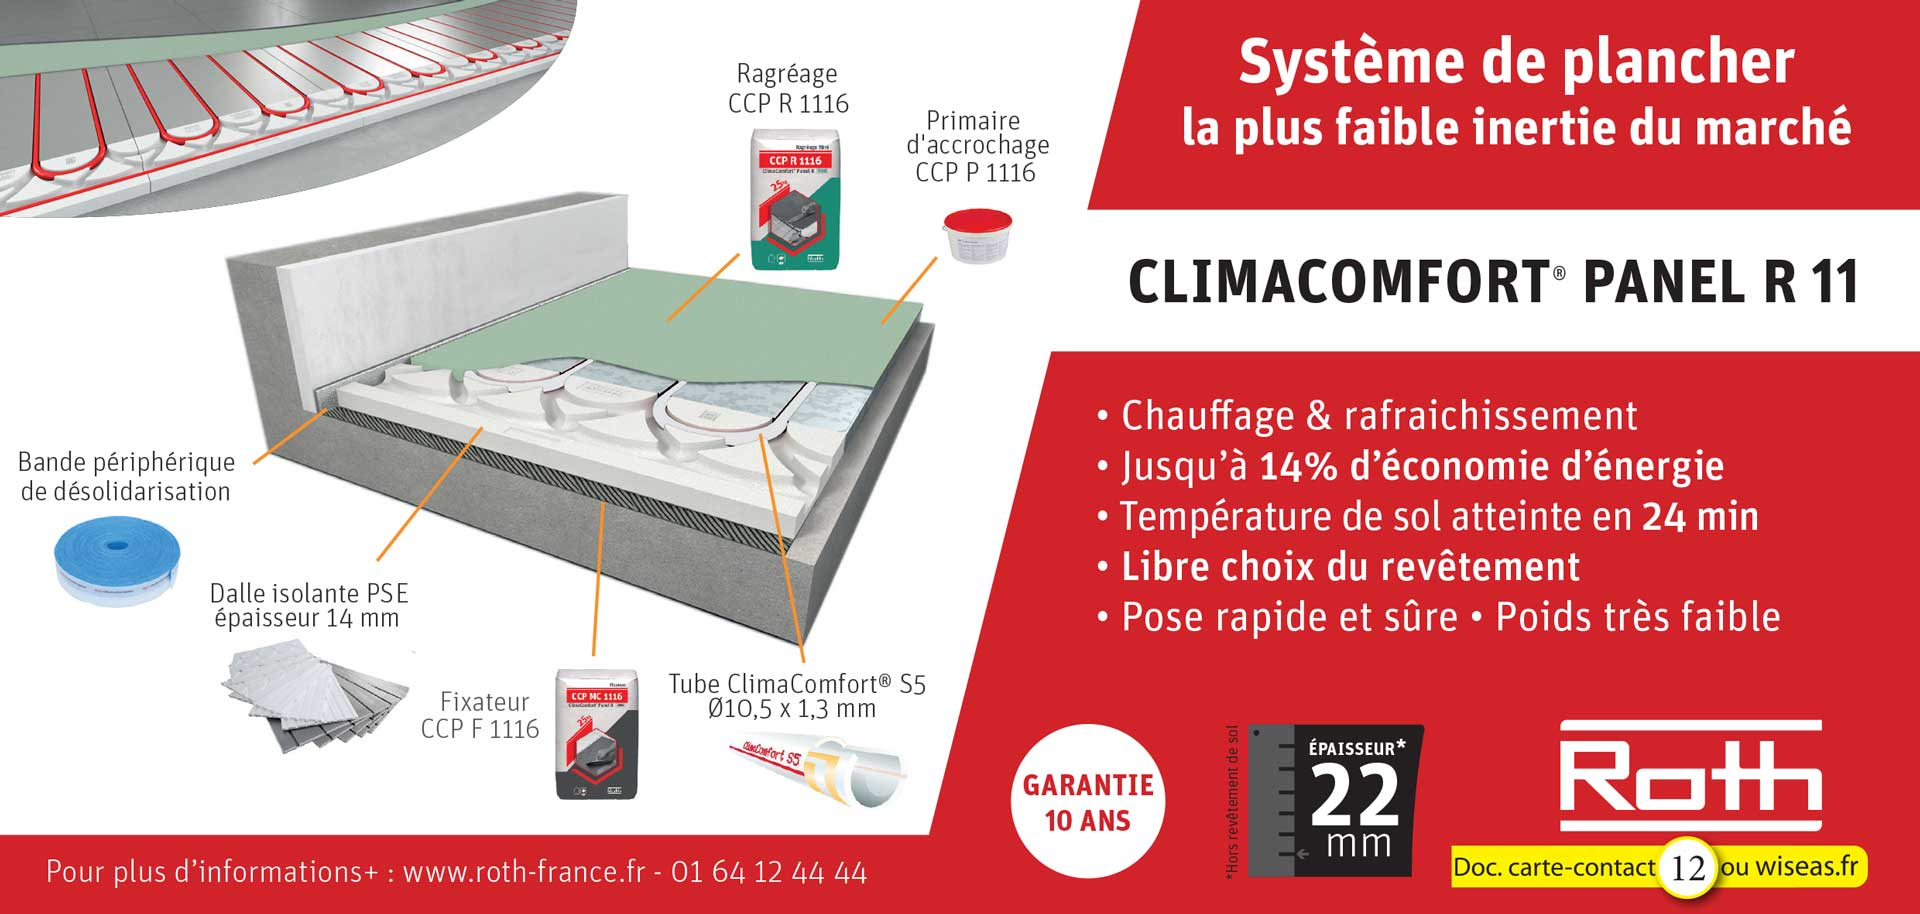 Climacomfort Panel R11